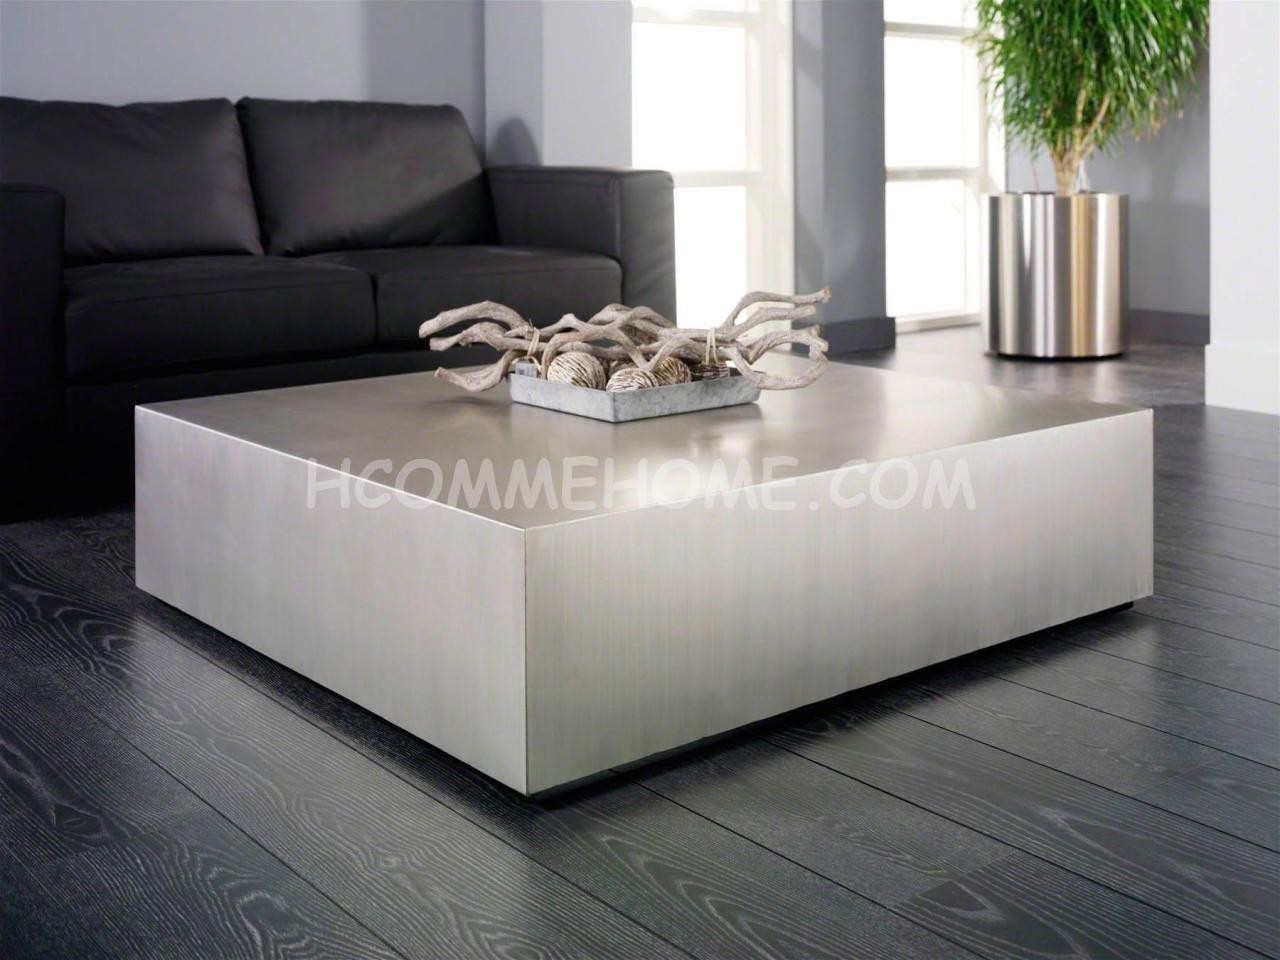 table basse design inox brosse. Black Bedroom Furniture Sets. Home Design Ideas